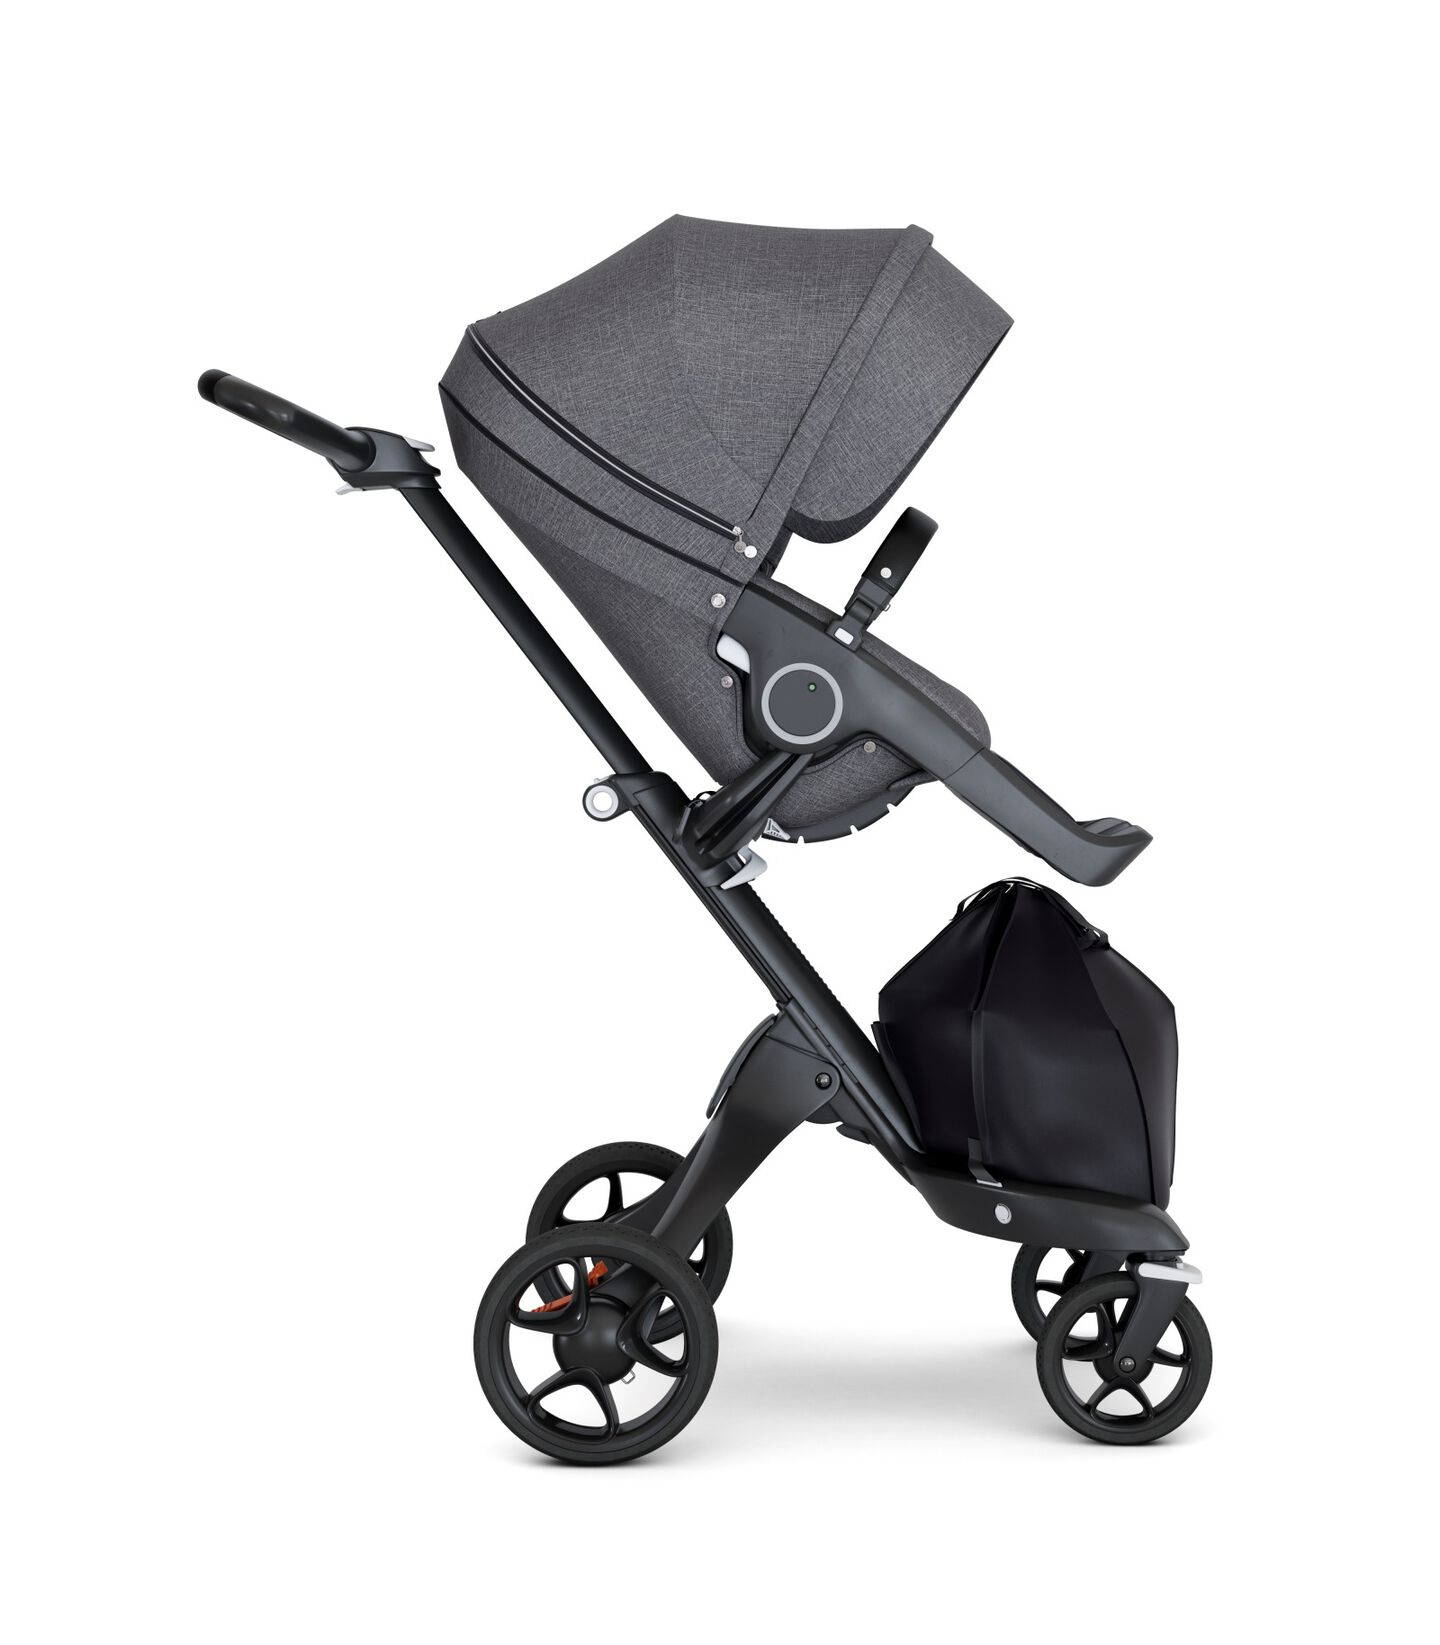 Stokke® Xplory® wtih Black Chassis and Leatherette Black handle. Stokke® Stroller Seat Seat Black Melange. Forward facing.